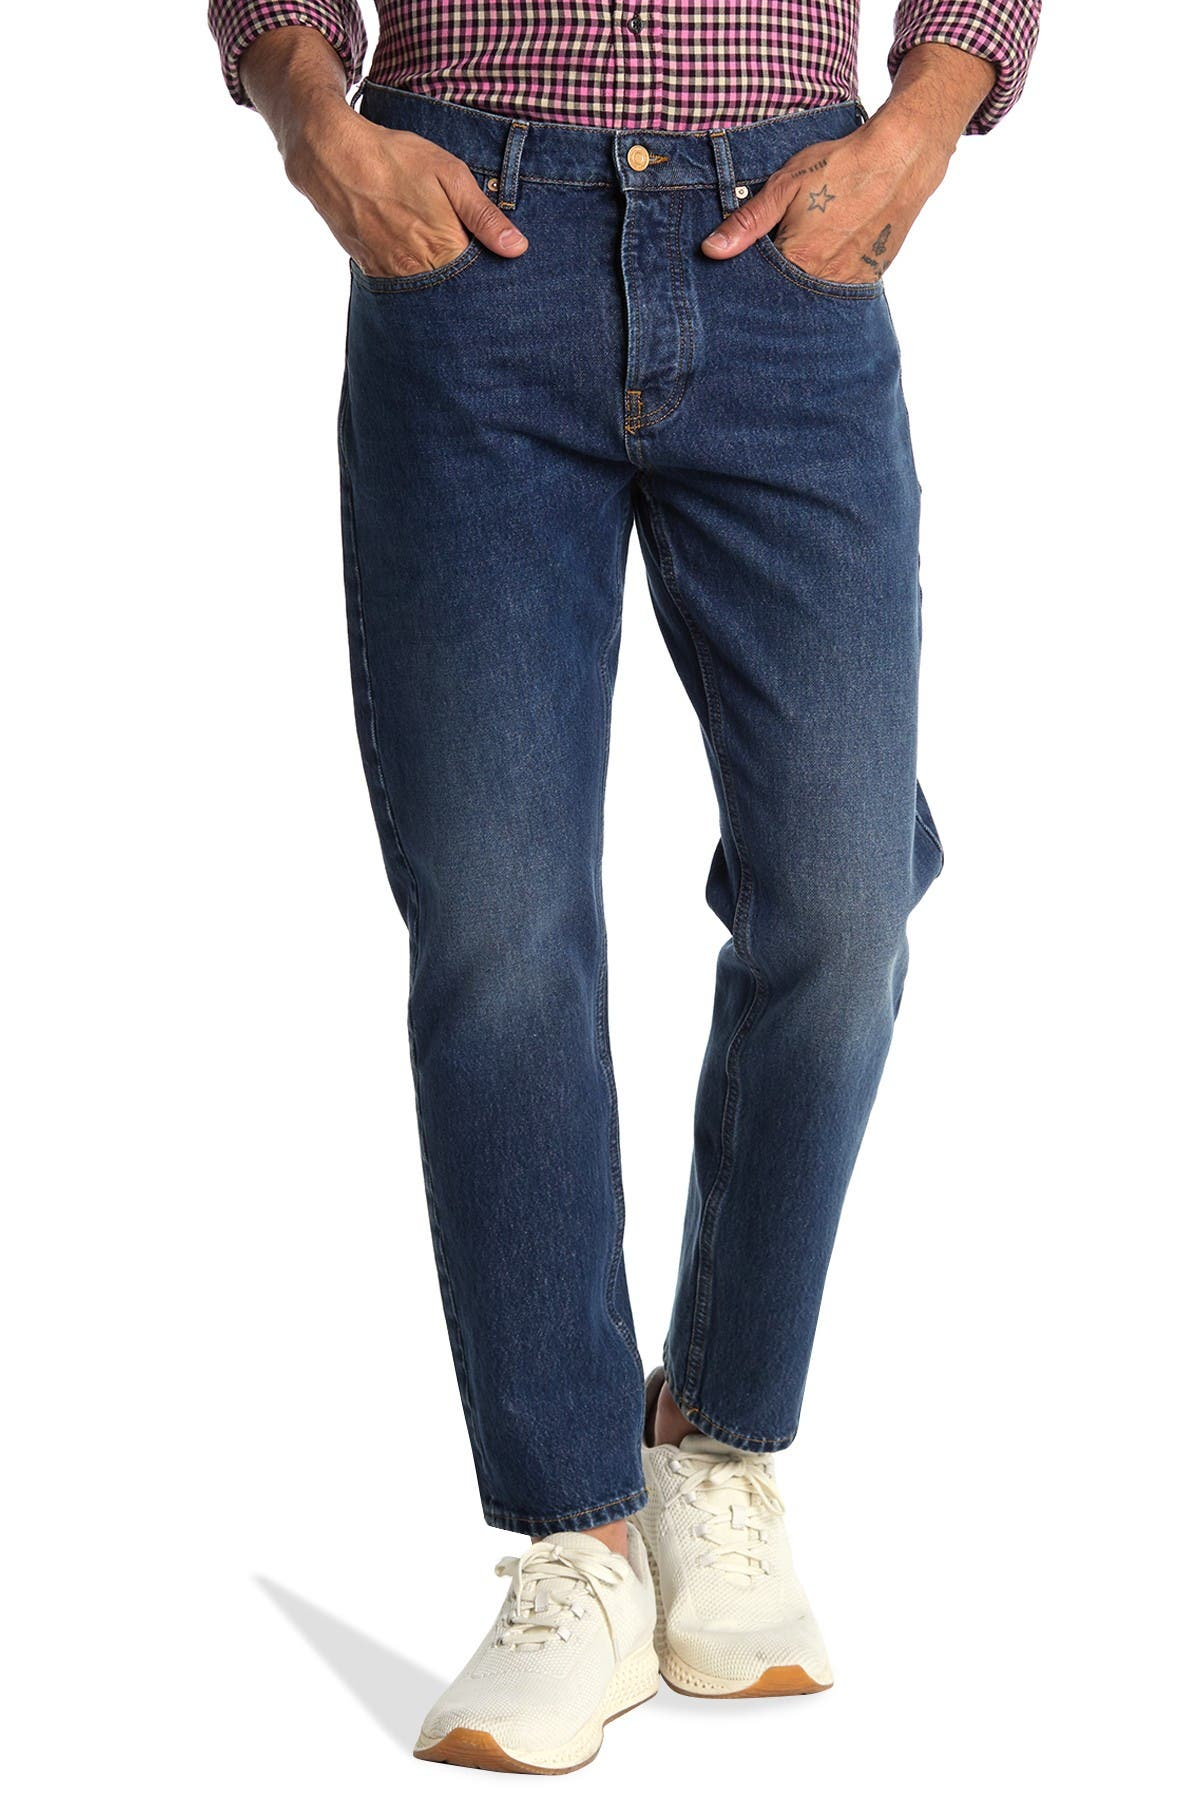 Image of Scotch & Soda The Norm Jeans